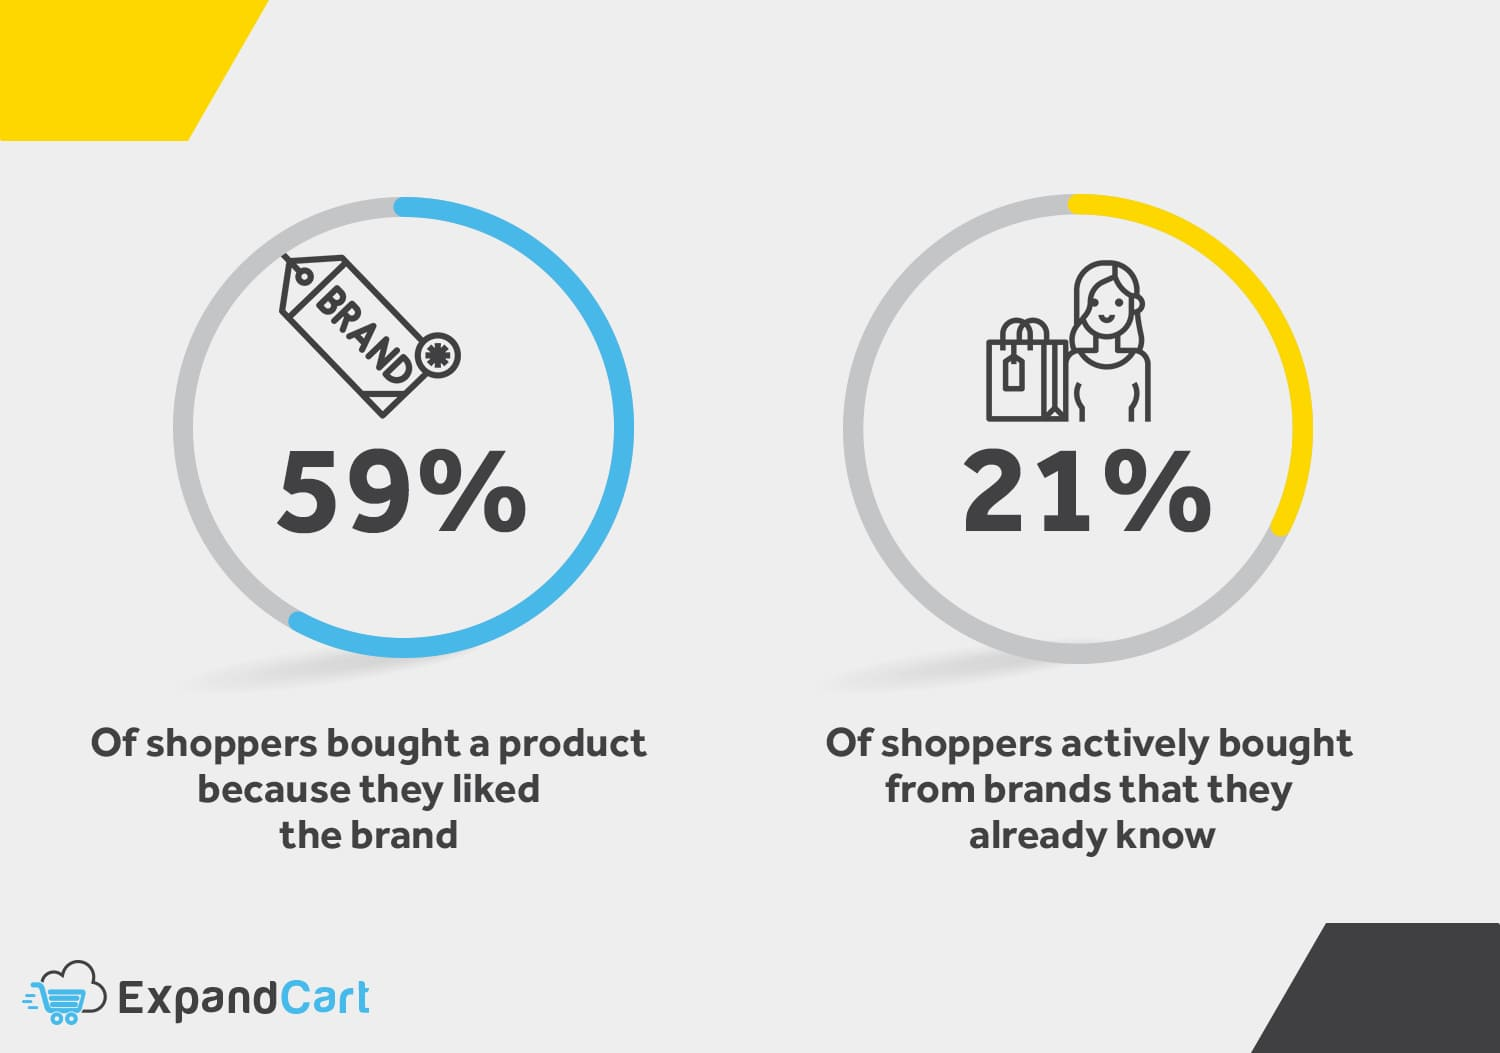 Importance of Branding for eCommerce businesses